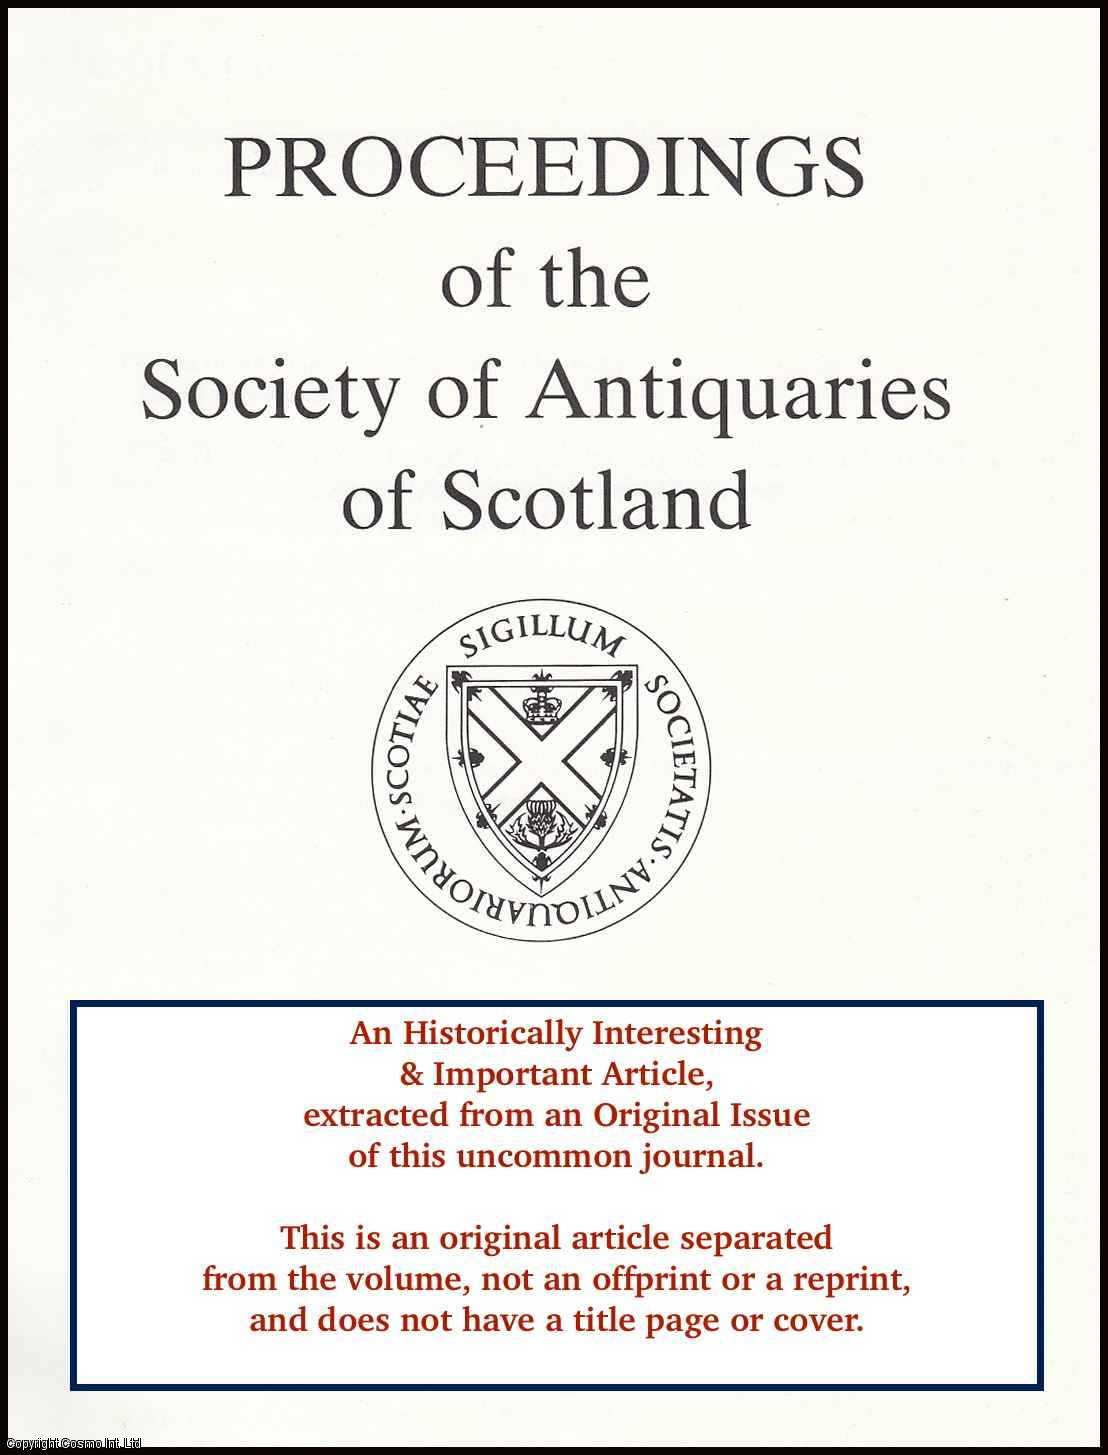 GRAHAM, ANGUS - Records and Opinions: 1780-1930. An original article from the Proceedings of the Society of Antiquaries of Scotland, 1973.